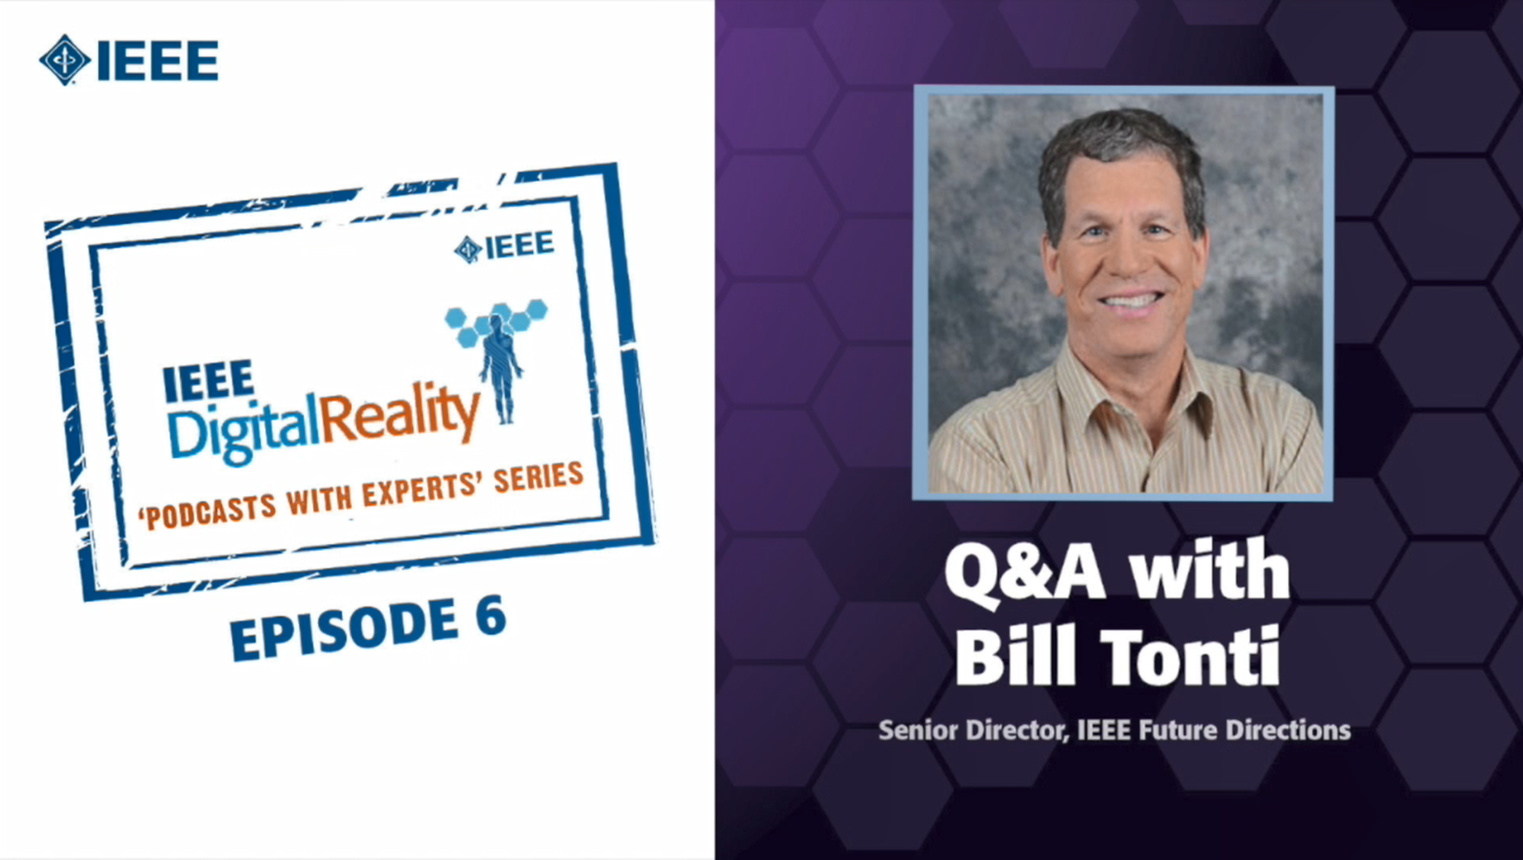 Q&A with Bill Tonti: IEEE Digital Reality Podcast, Episode 6